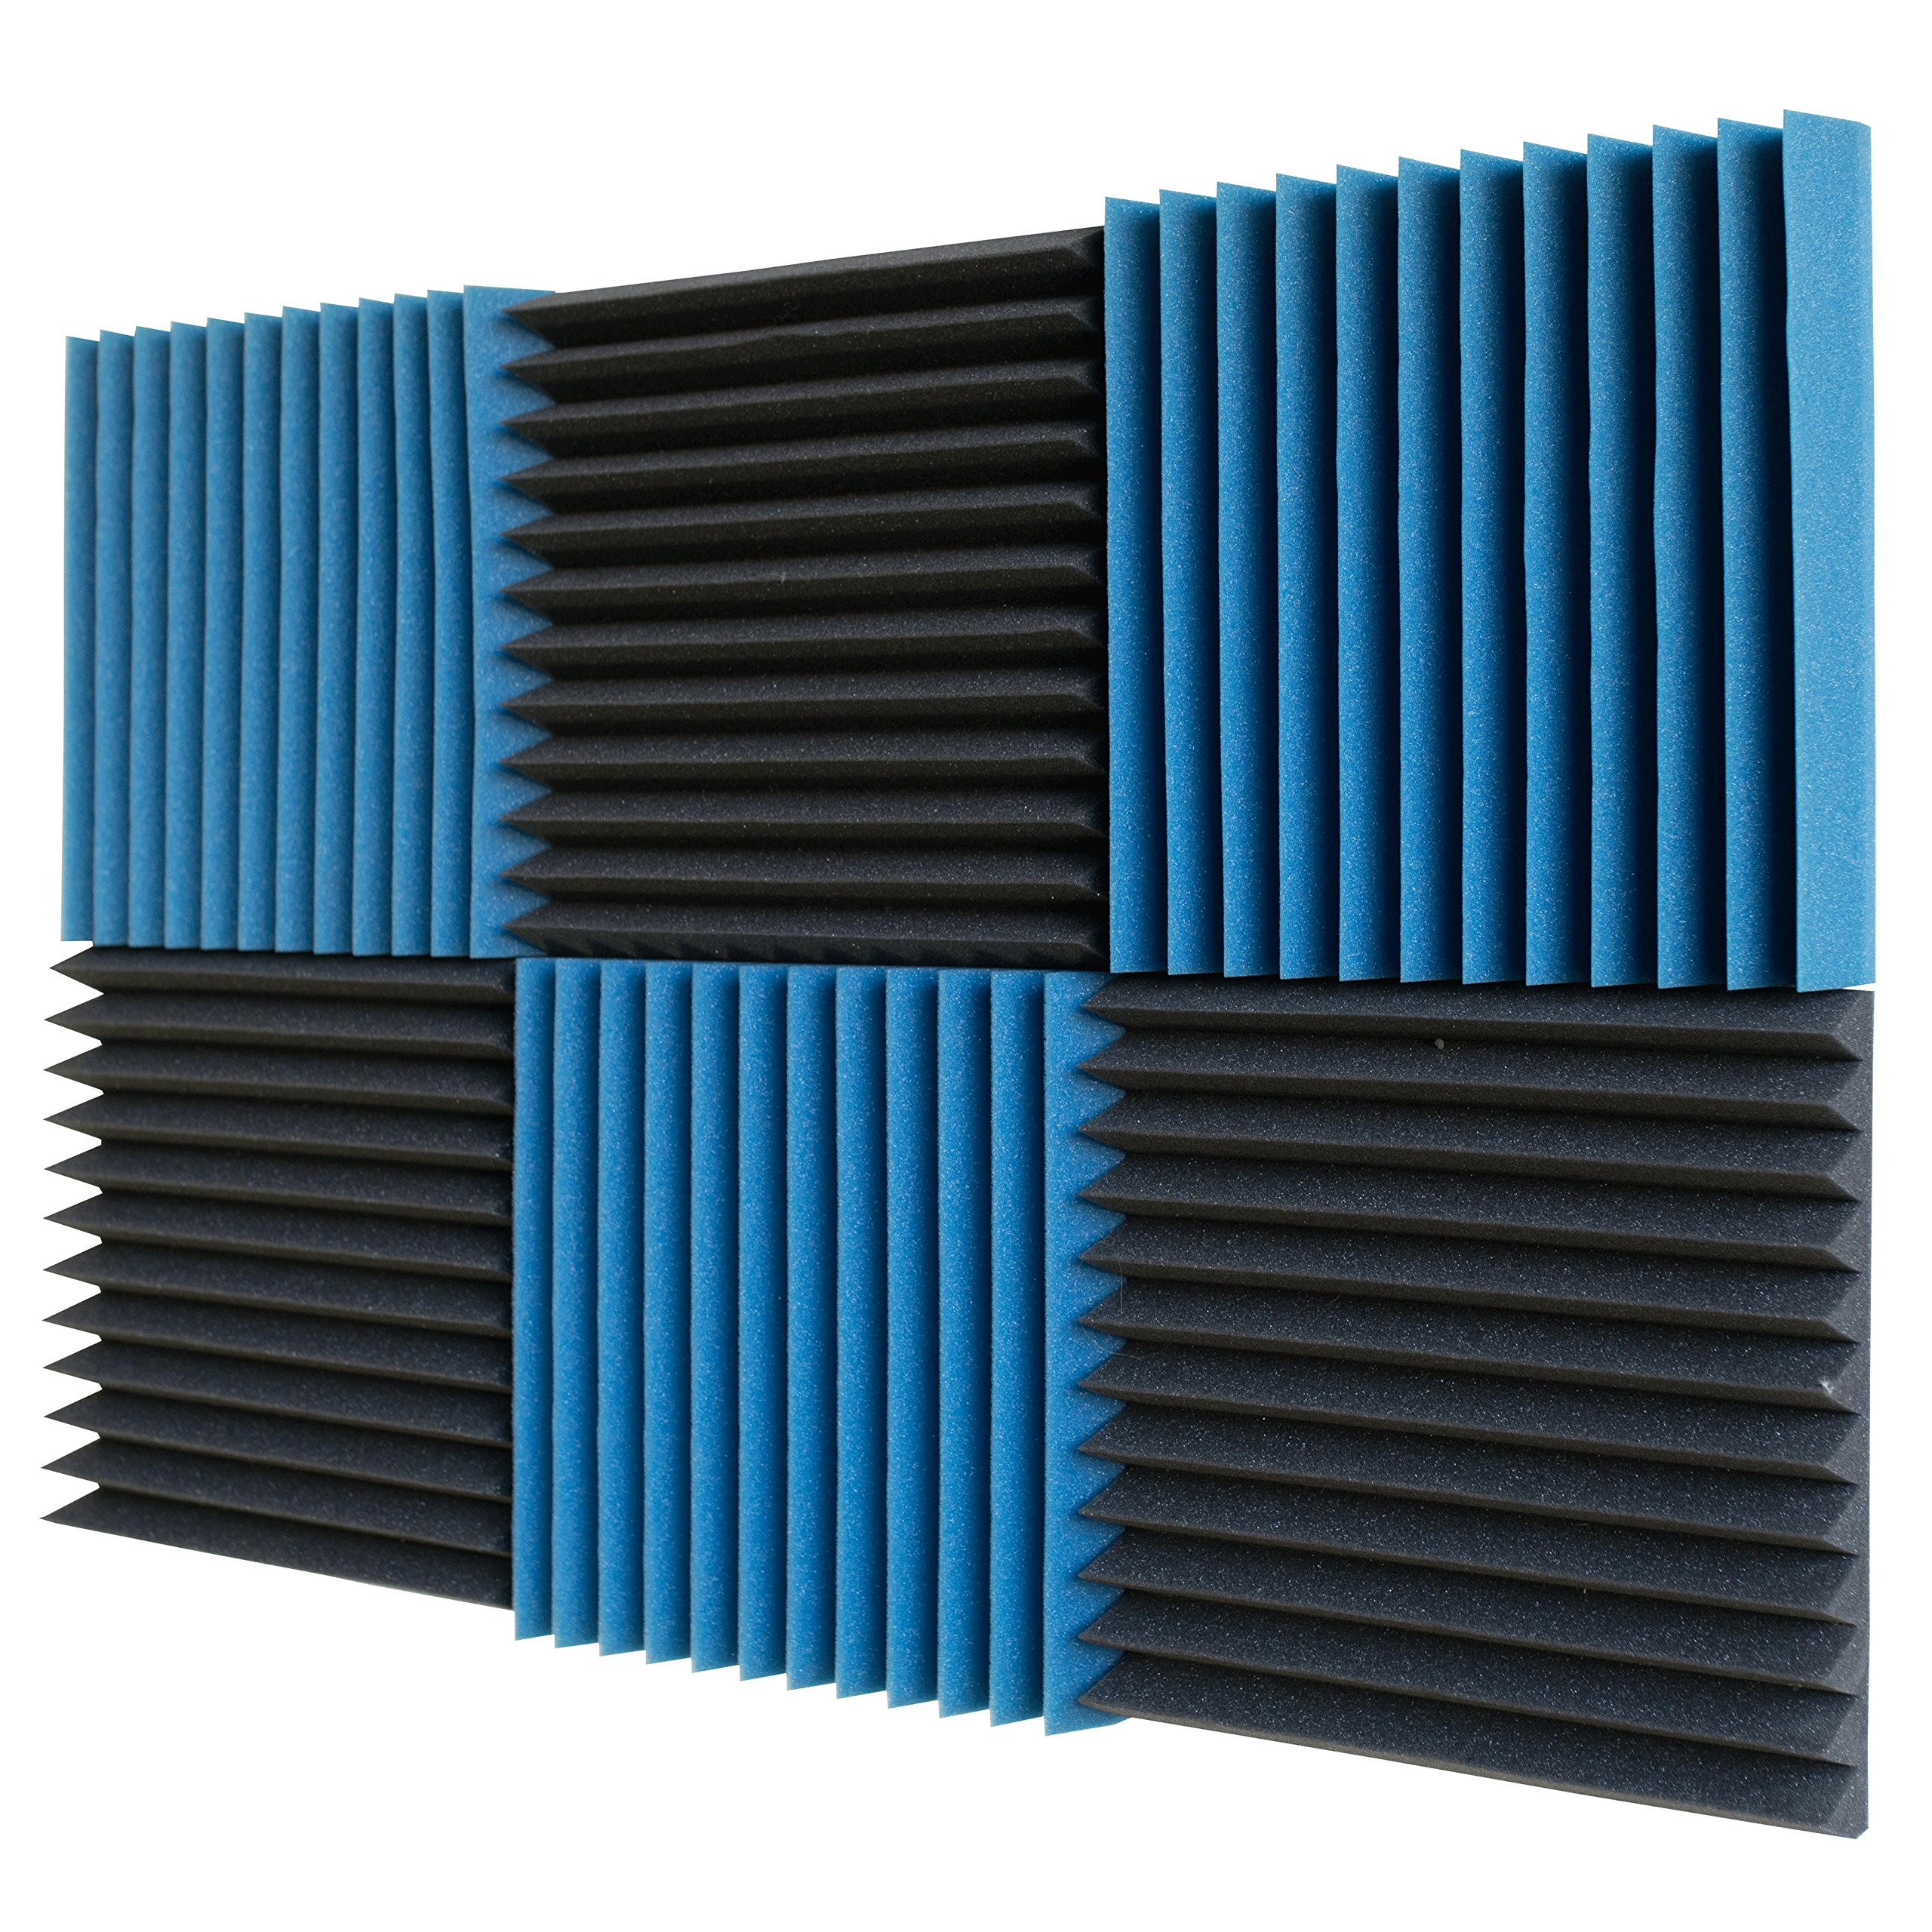 6 Pack- Ice Blue/Charcoal Acoustic Panels Studio Foam Wedges 2'' X 12'' X 12'' by Foamily